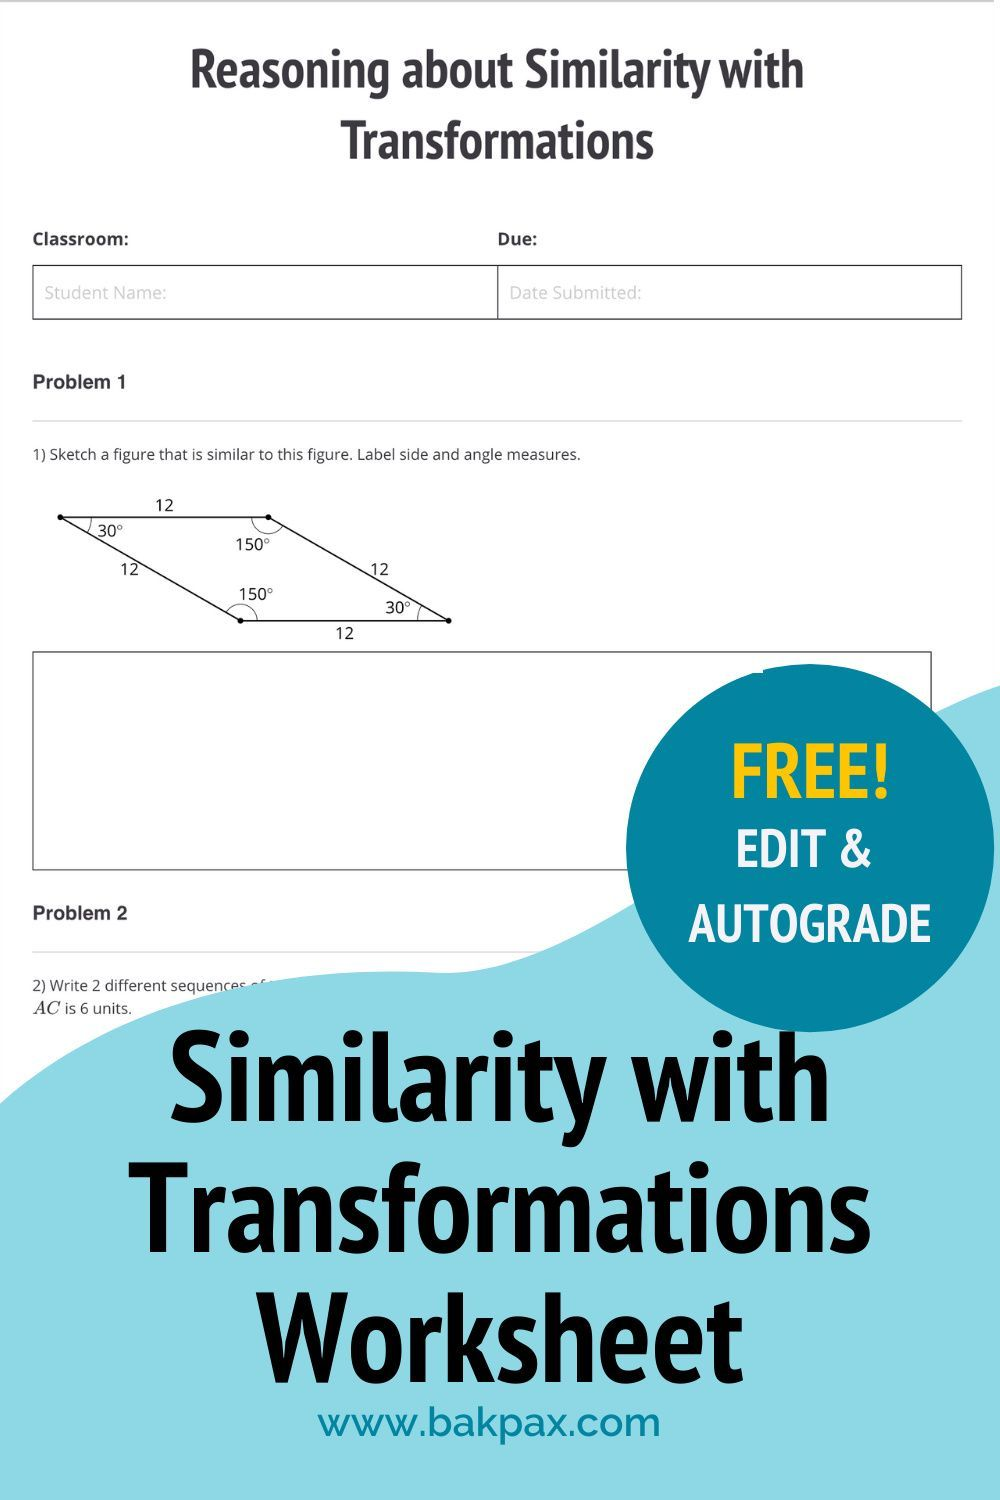 Free Similarity With Transformations Geometry Worksheet Geometry Worksheets Transformation Geometry Worksheets